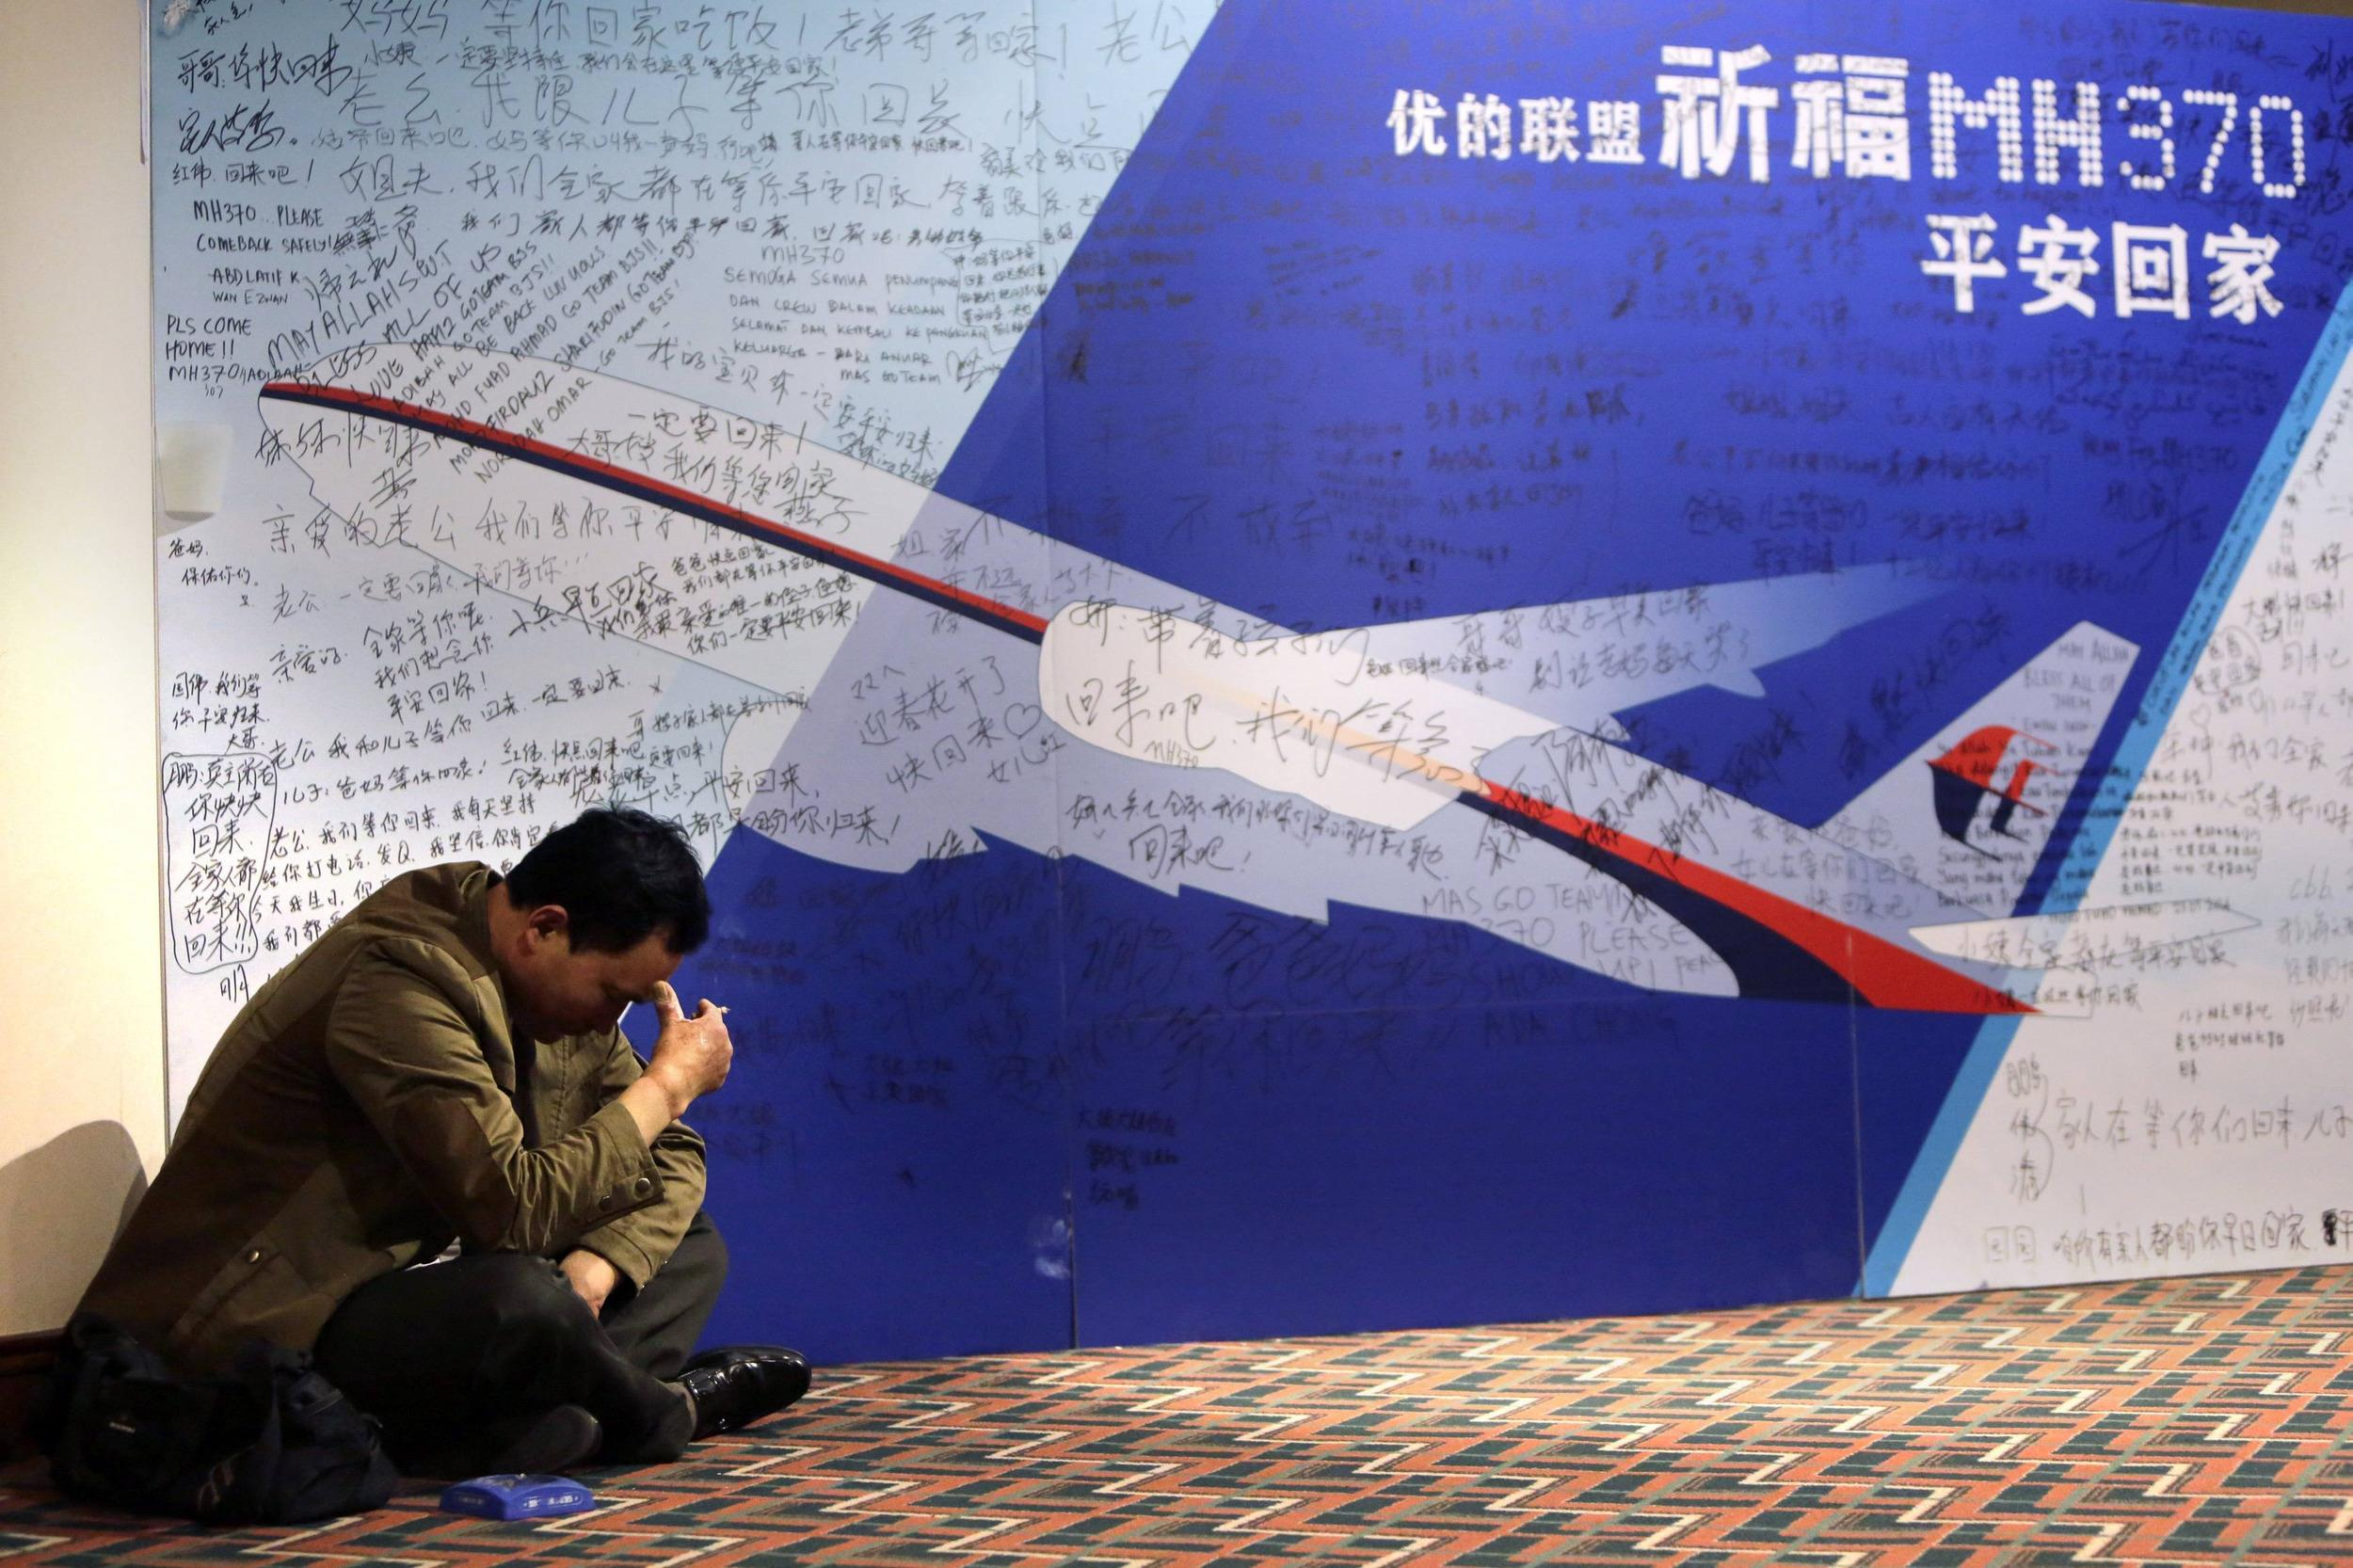 Image:A family member of a Flight 370 passenger sits near message board at Lido Hotel in Beijing on March 29